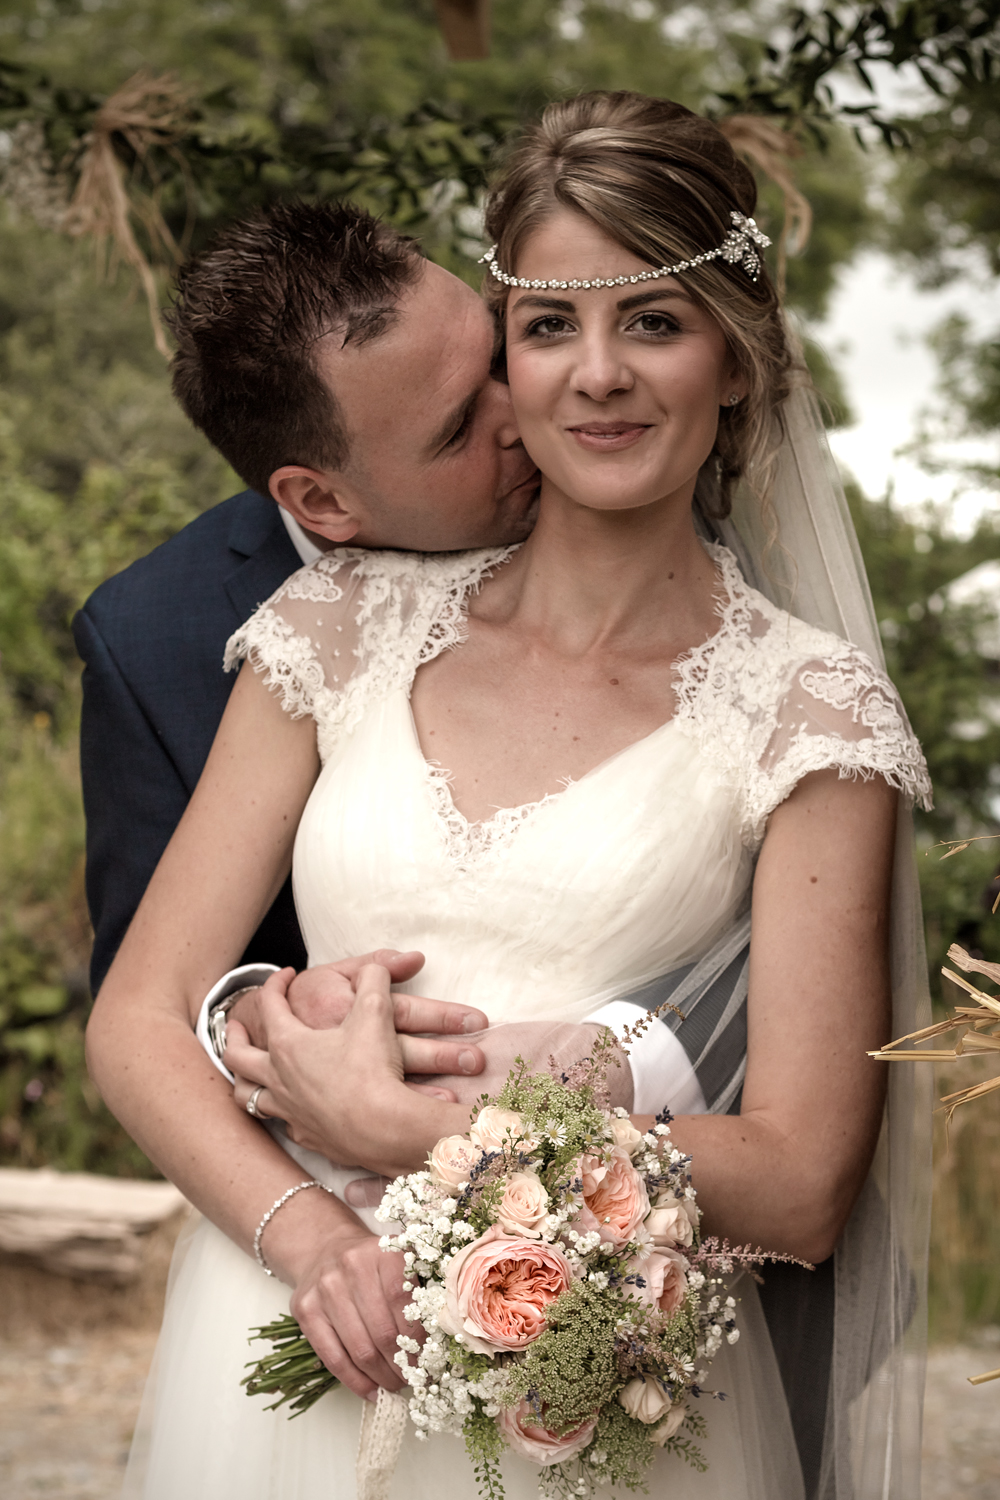 A Rustic Country Wedding at Knightor Winery - Image 23